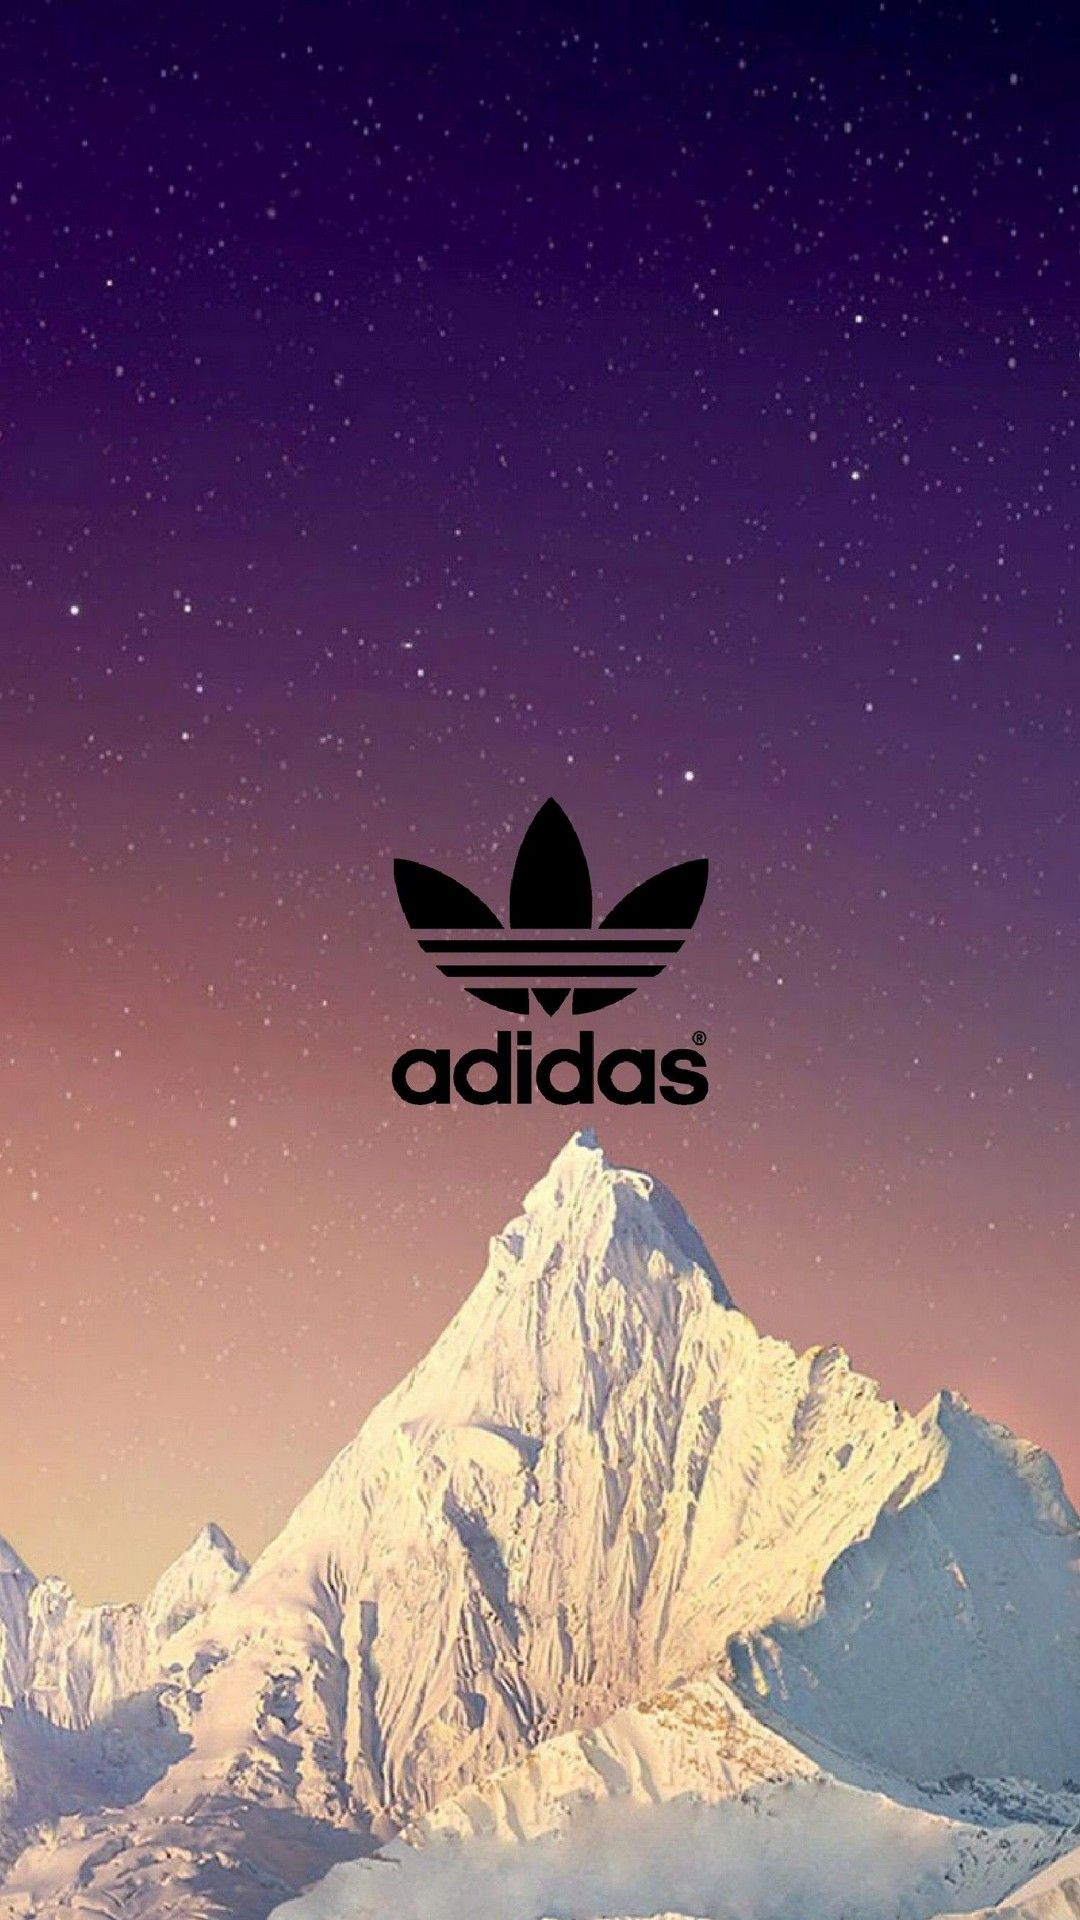 Pin by Cheyanne Rose on Nike wallpaper (With images